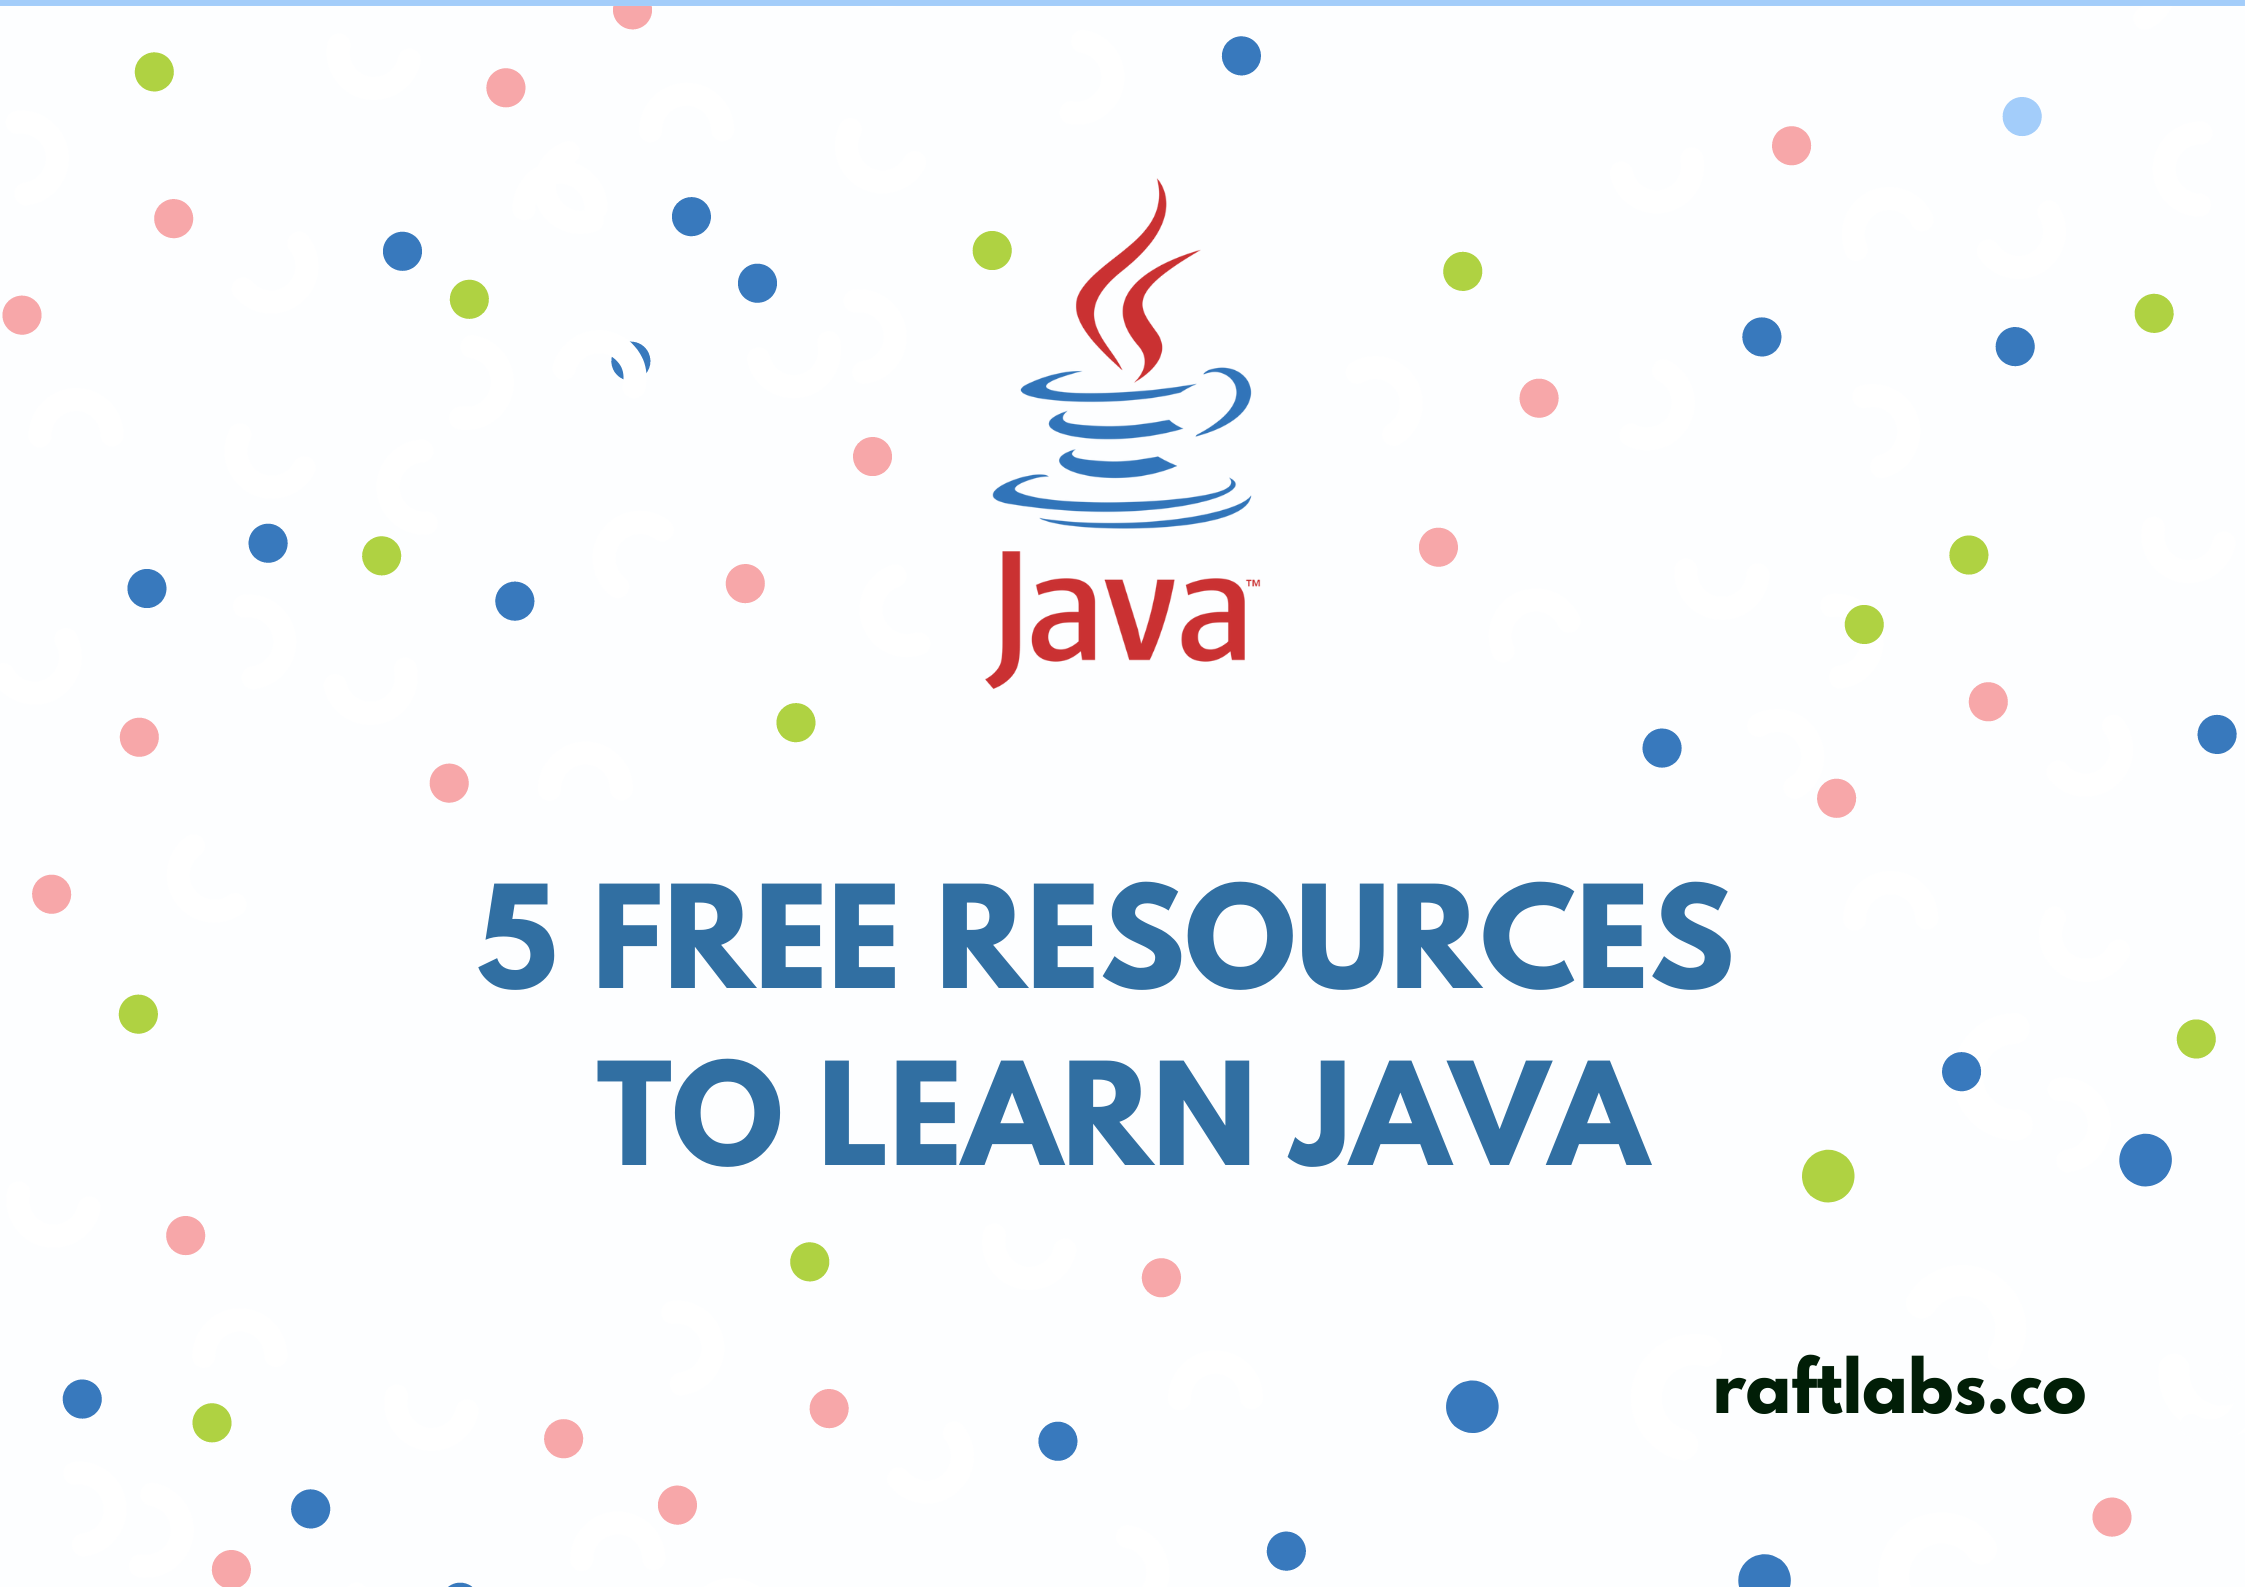 Thumbnail of Top Free Resources to learn Java